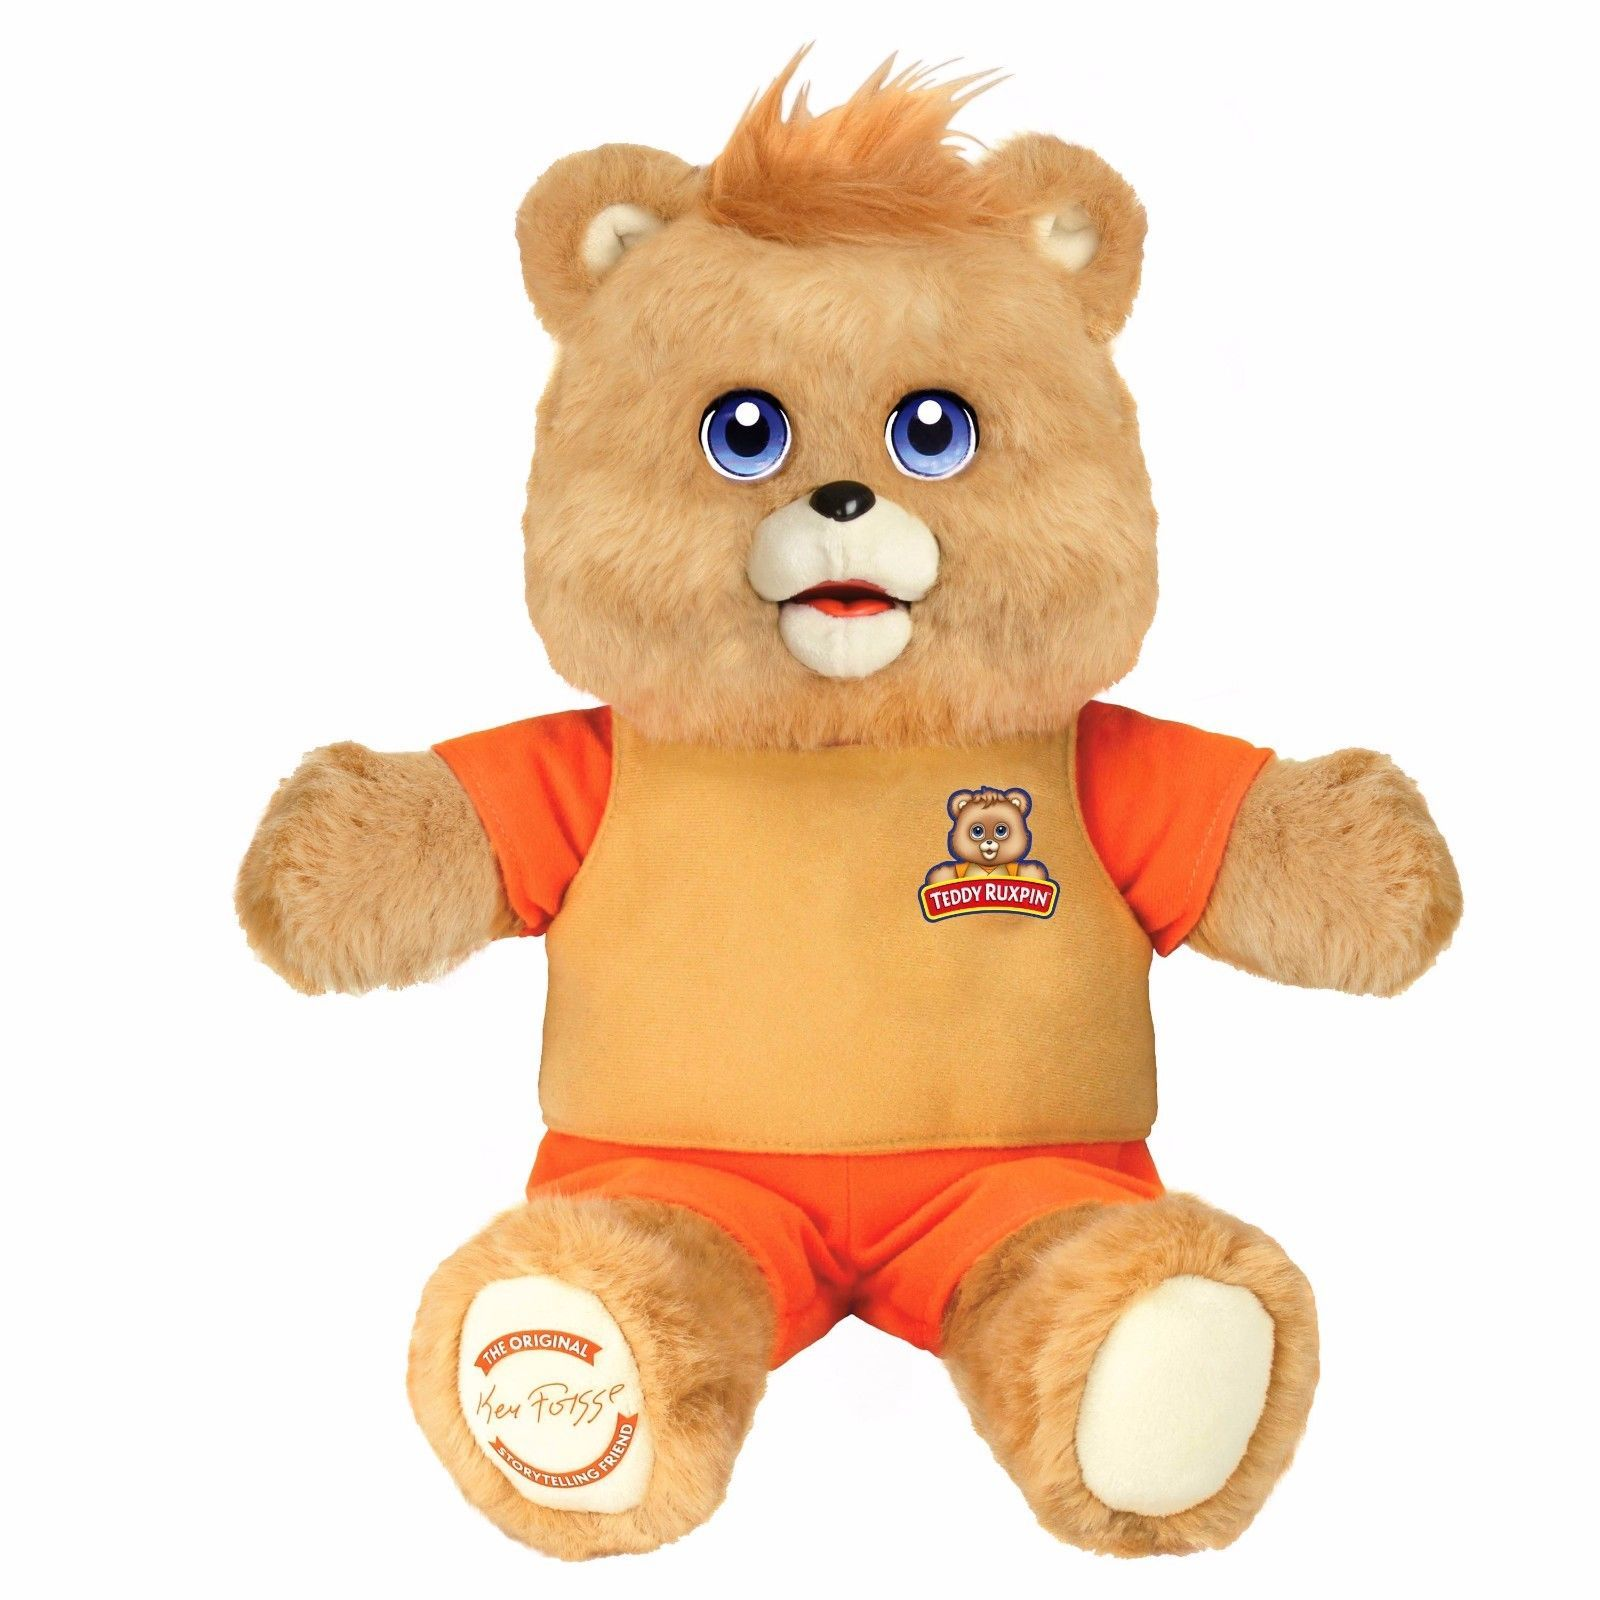 Teddy Ruxpin Bear 2017 Storytelling Original Outfit Target Exclusive New in Hand